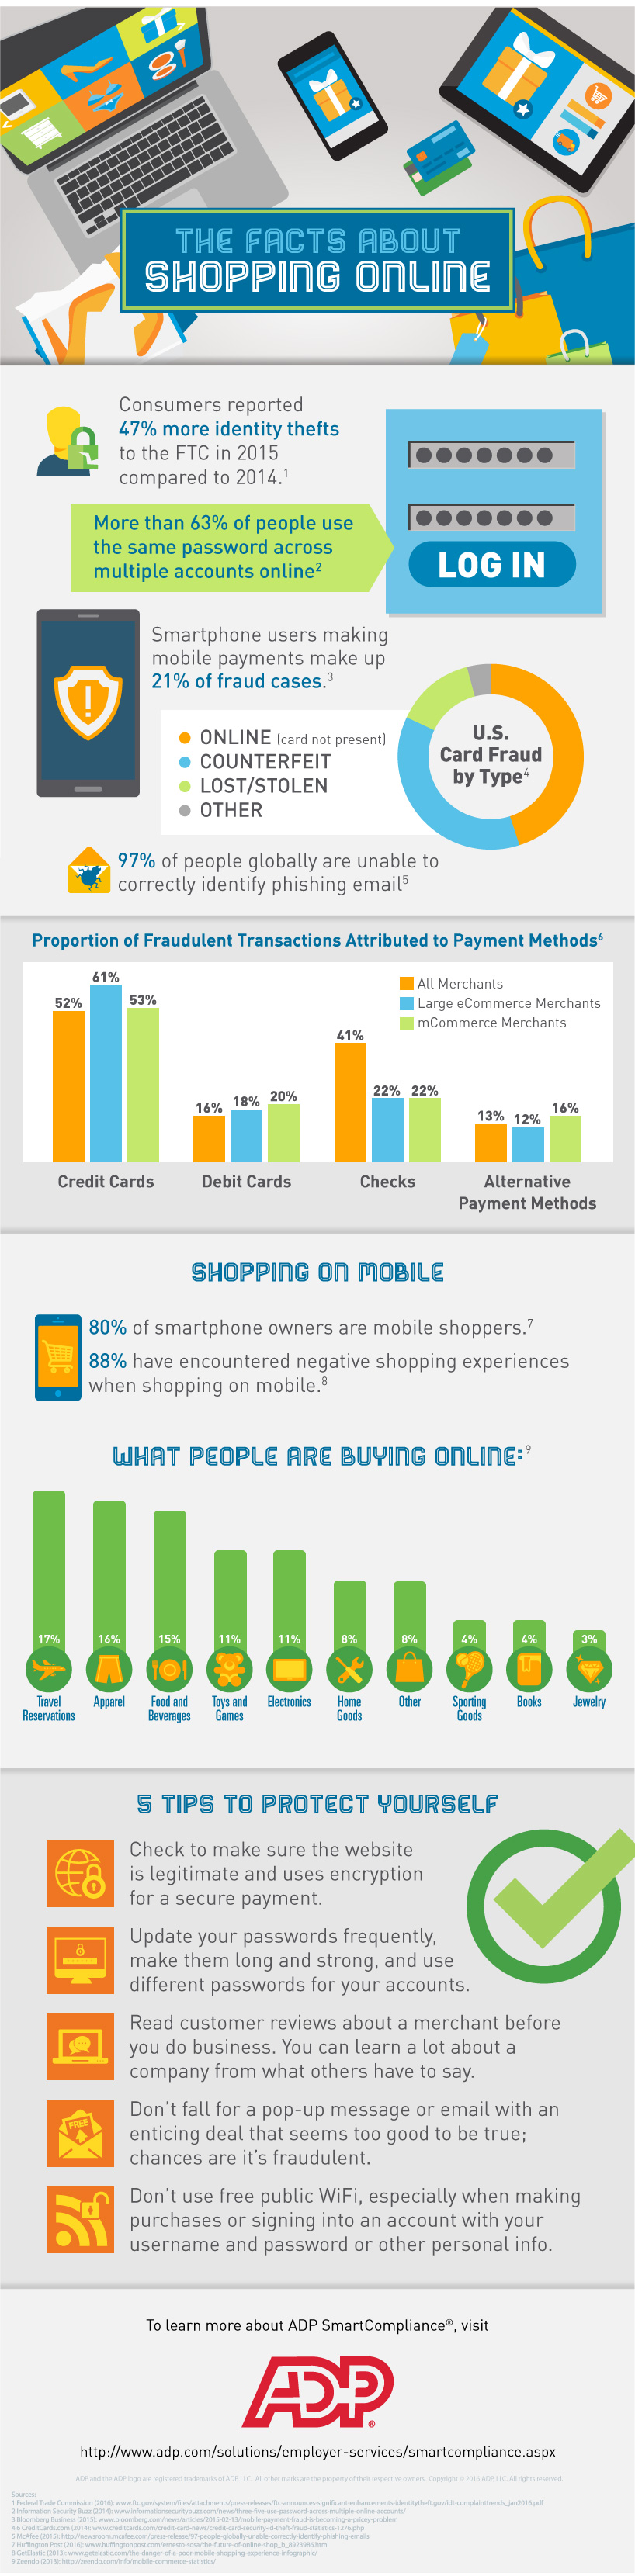 Online_Shopping_Safety-infogrpahic-plaza